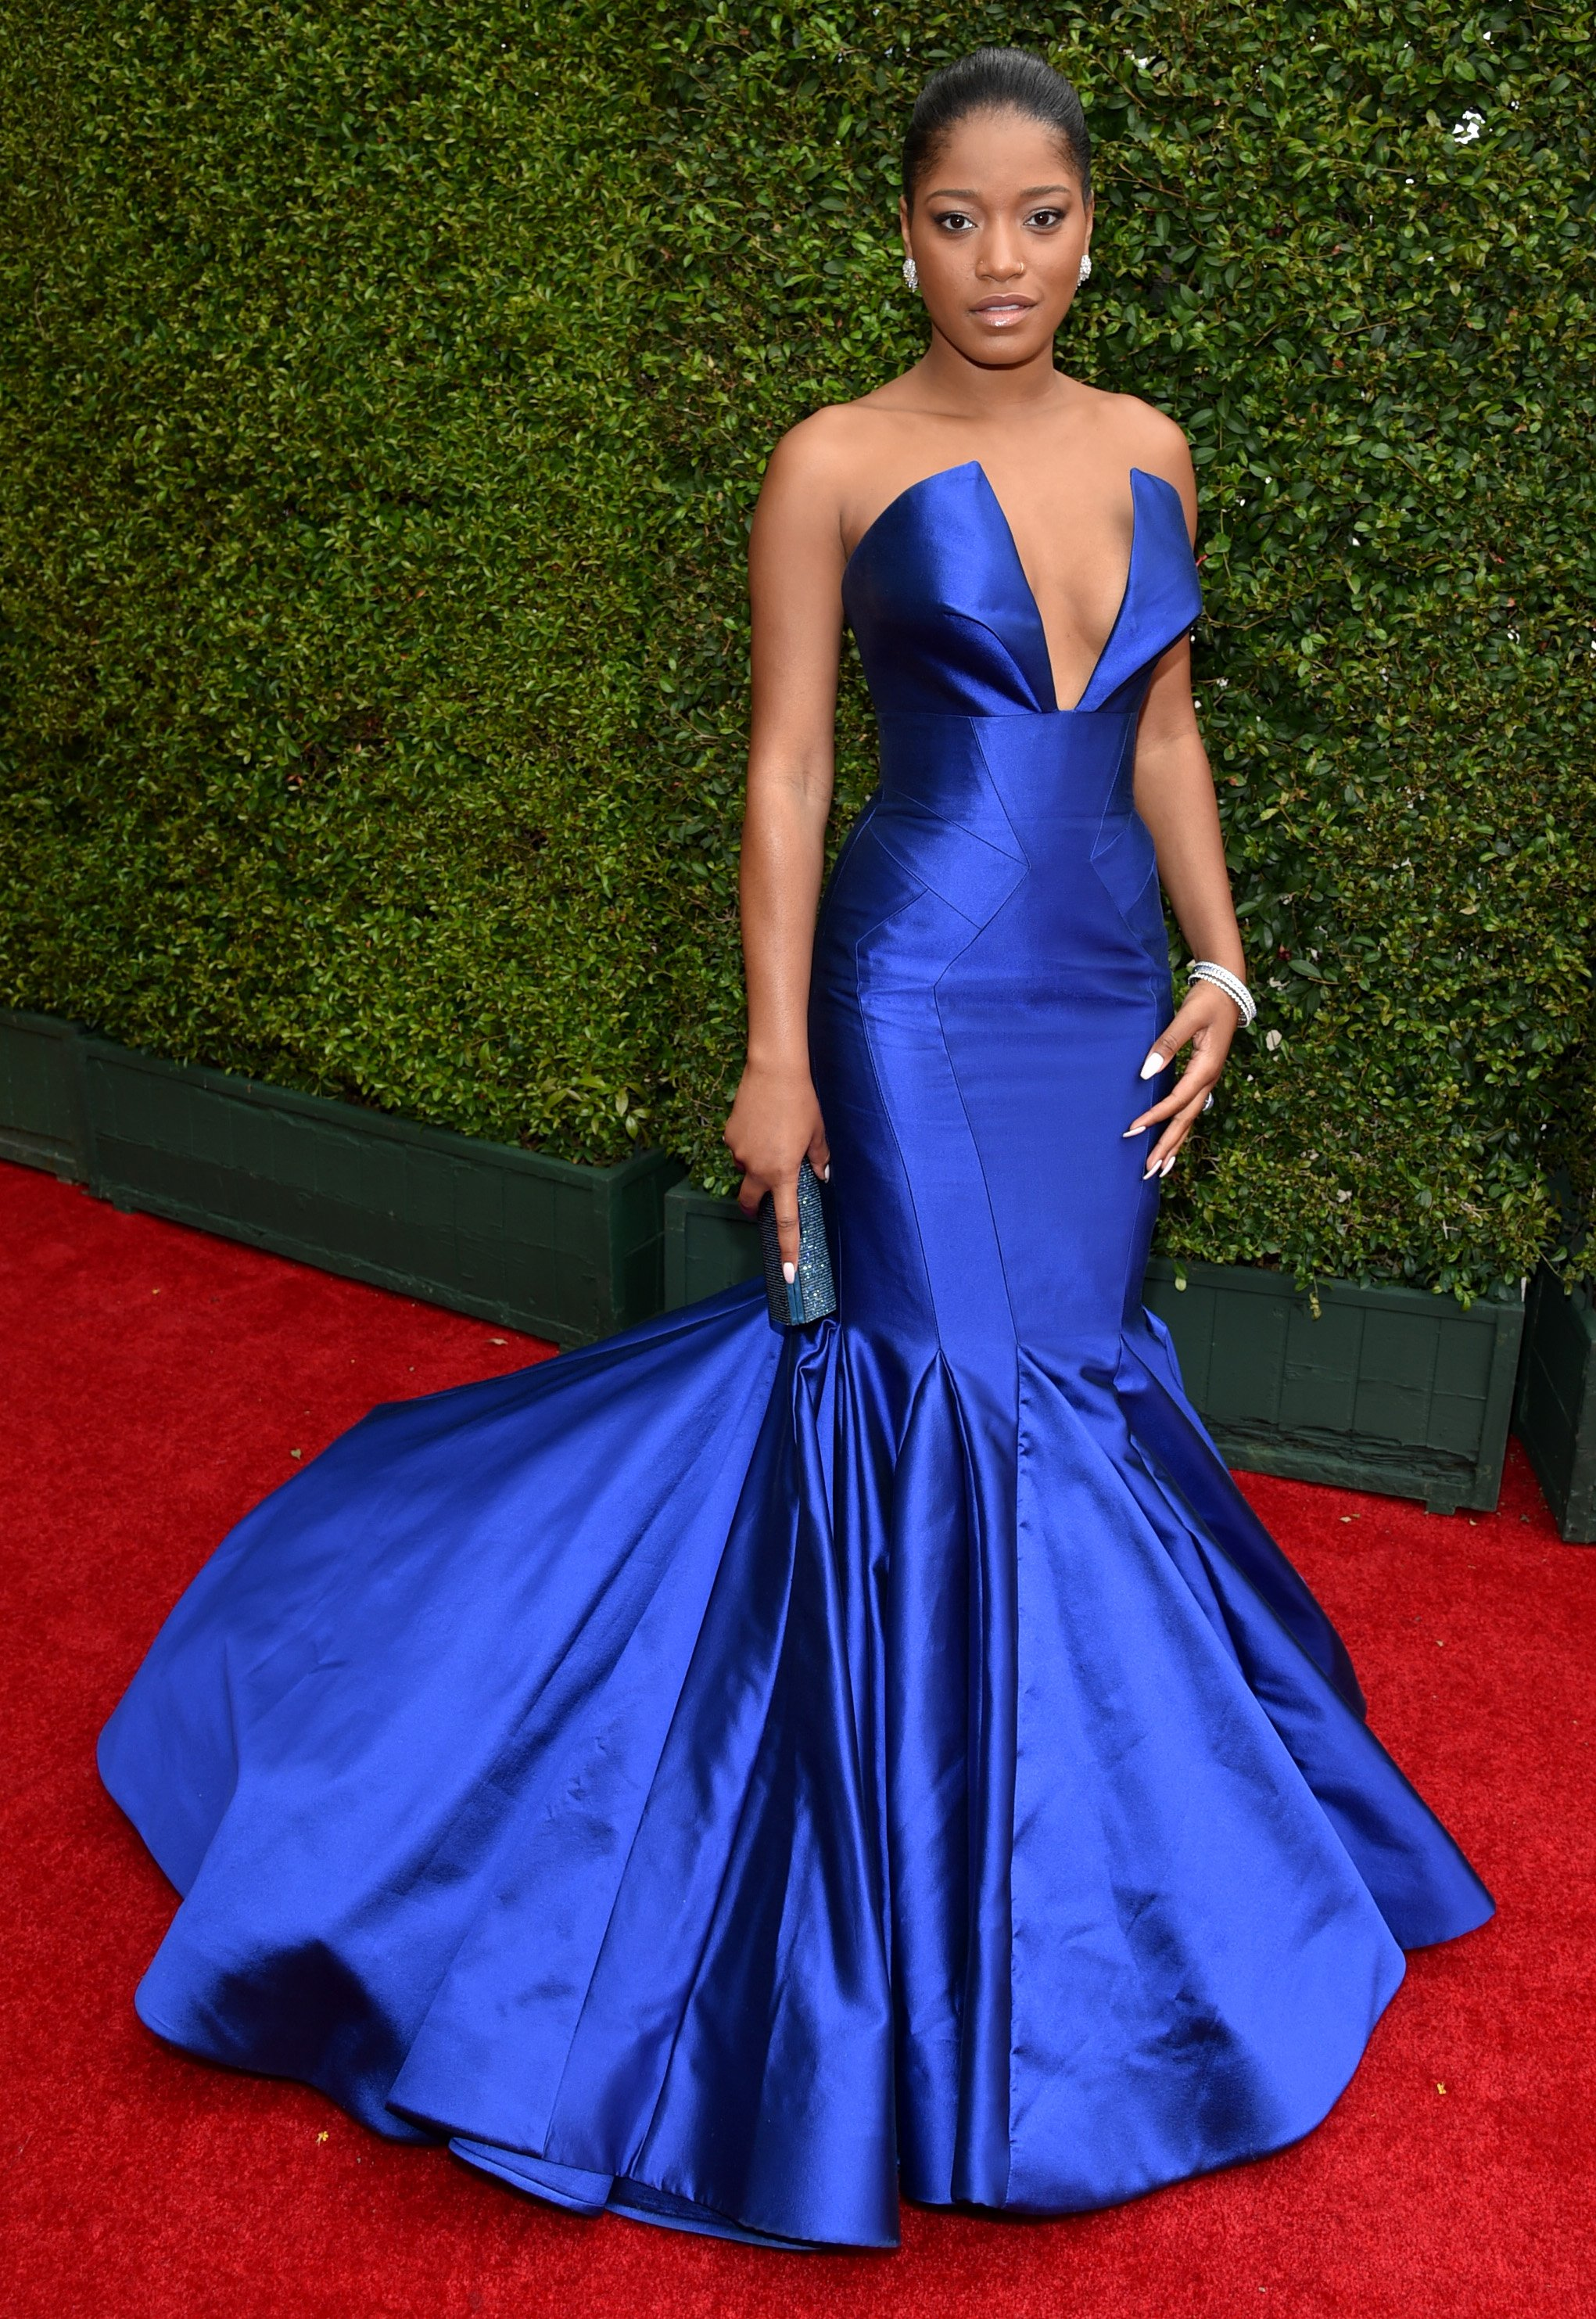 Keke Palmer arrives at the 66th Primetime Emmy Awards at the Nokia Theatre L.A. Live on Monday, Aug. 25, 2014, in Los Angeles.